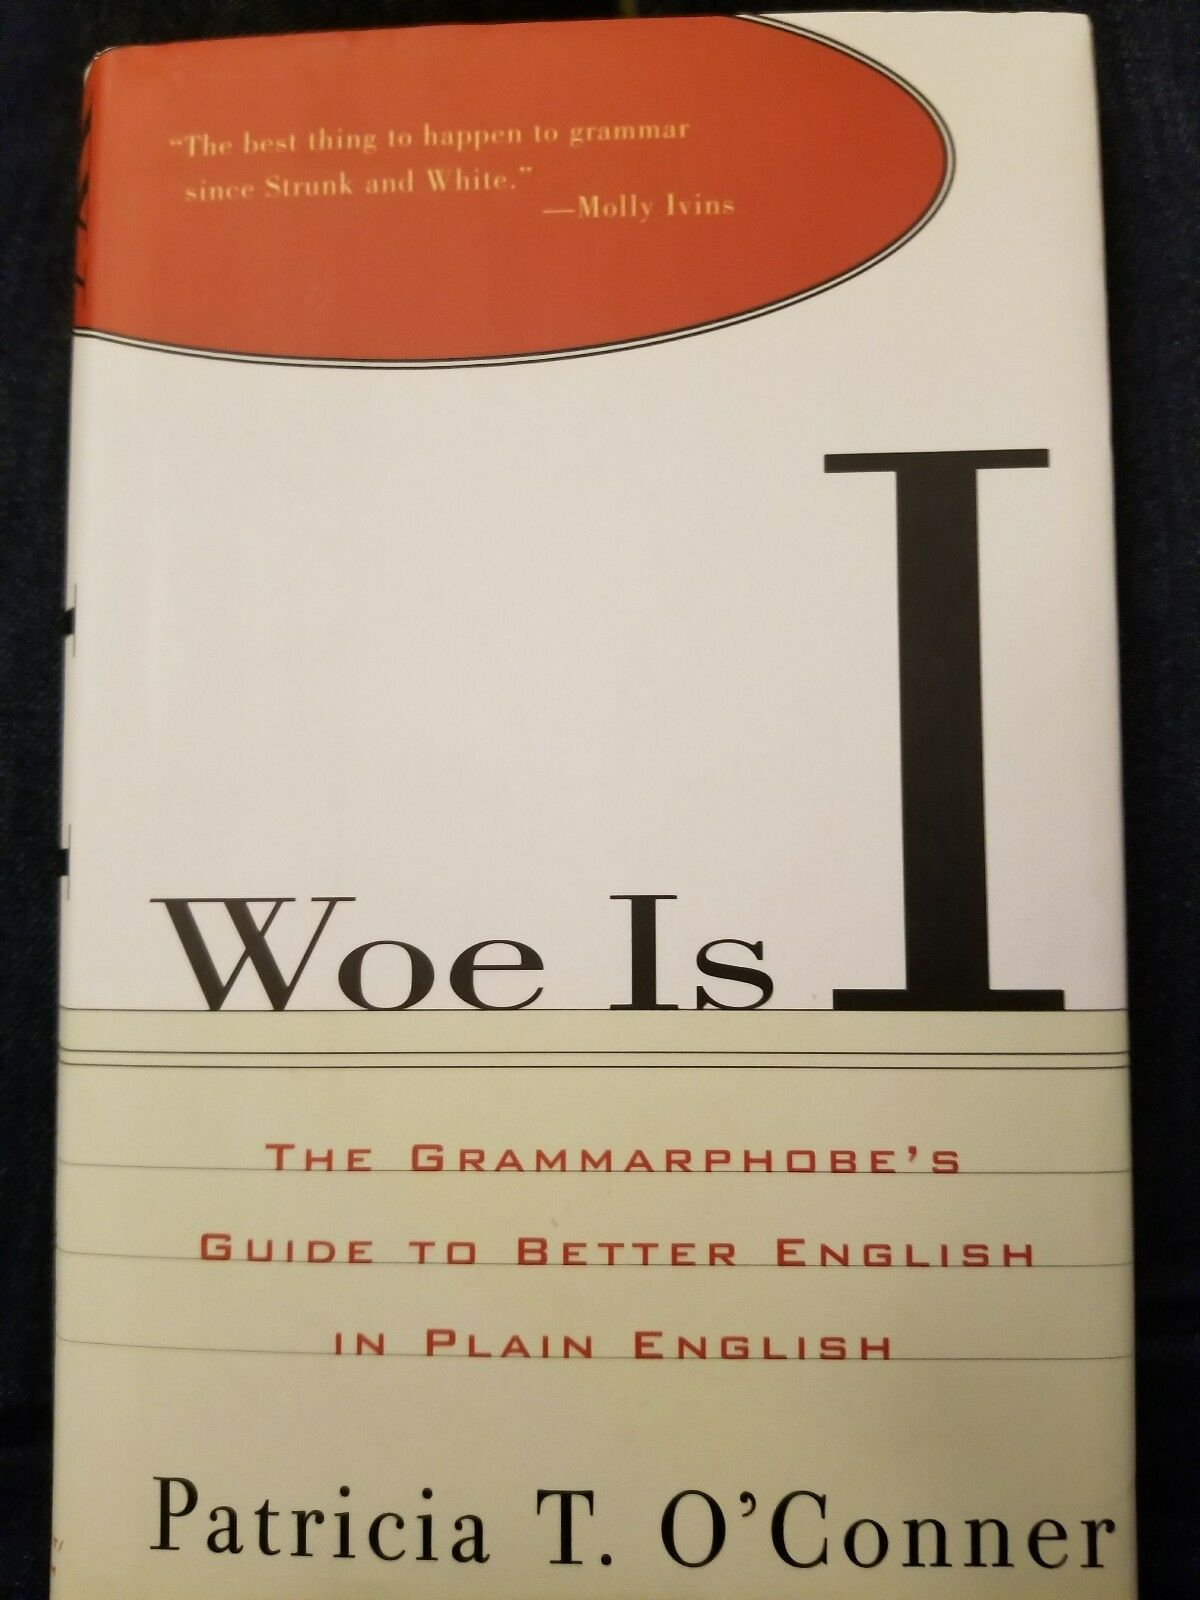 Woe Is I : The Grammarphobe's Guide to Better English in Plain English by Patricia  T. O'Conner (1996, Hardcover) | eBay